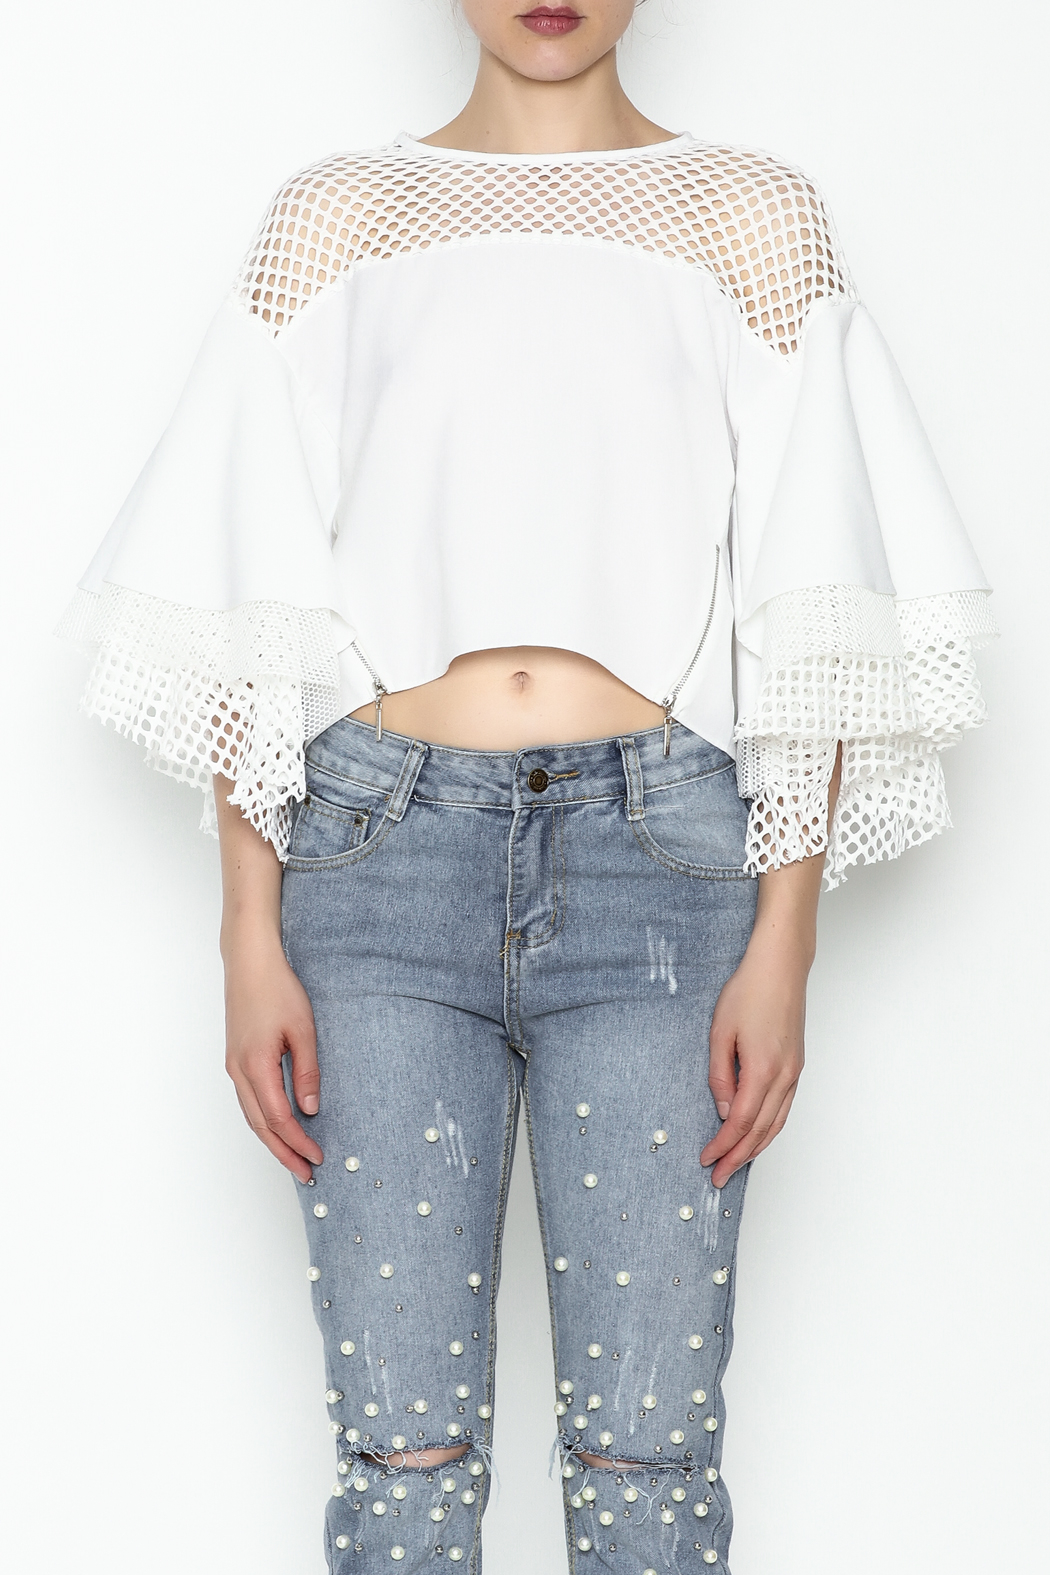 cq by cq White Netted Top - Front Full Image